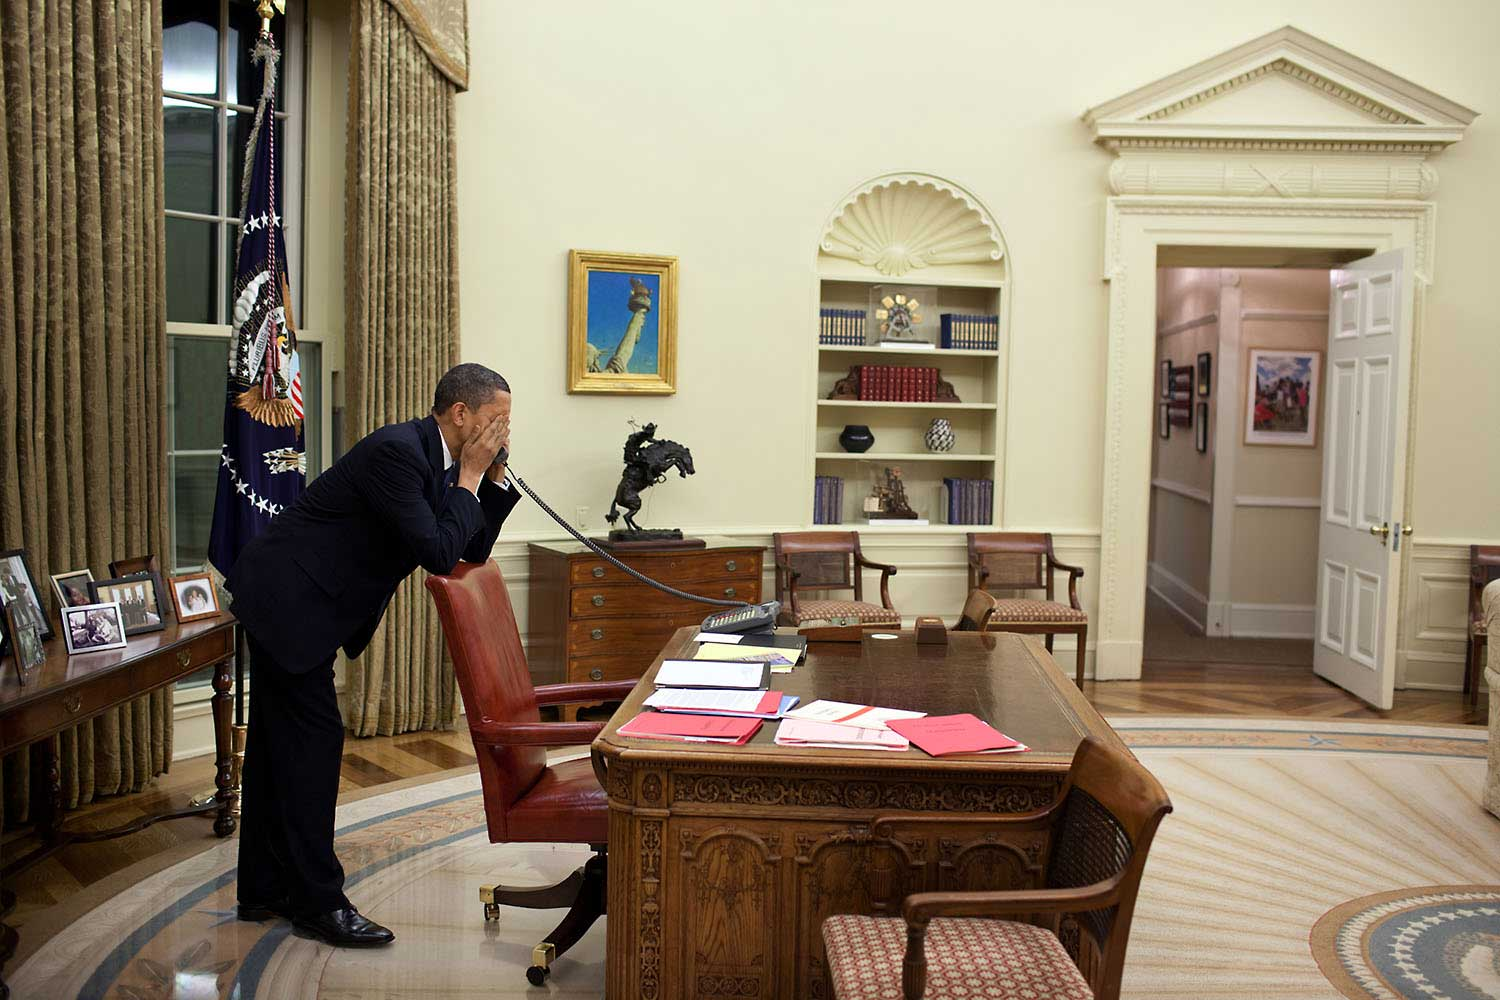 After dinner with his family on March 19, 2009, the President works the phone in the Oval Office to continue pressing Congressmen to vote for the health care reform bill.